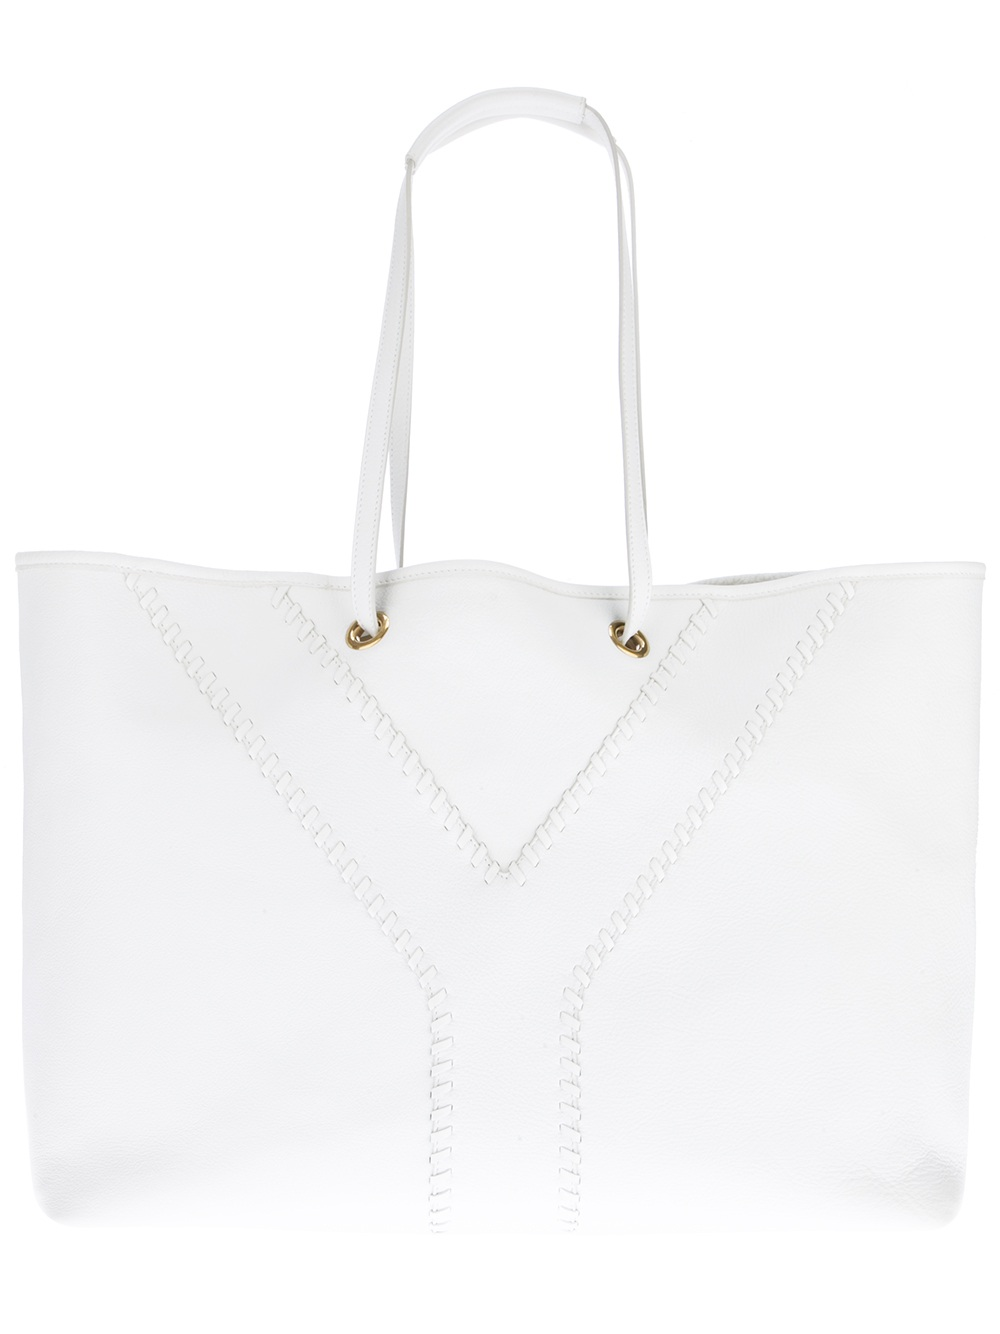 where to buy fake prada bags - Saint laurent Neo Double Tote in White   Lyst